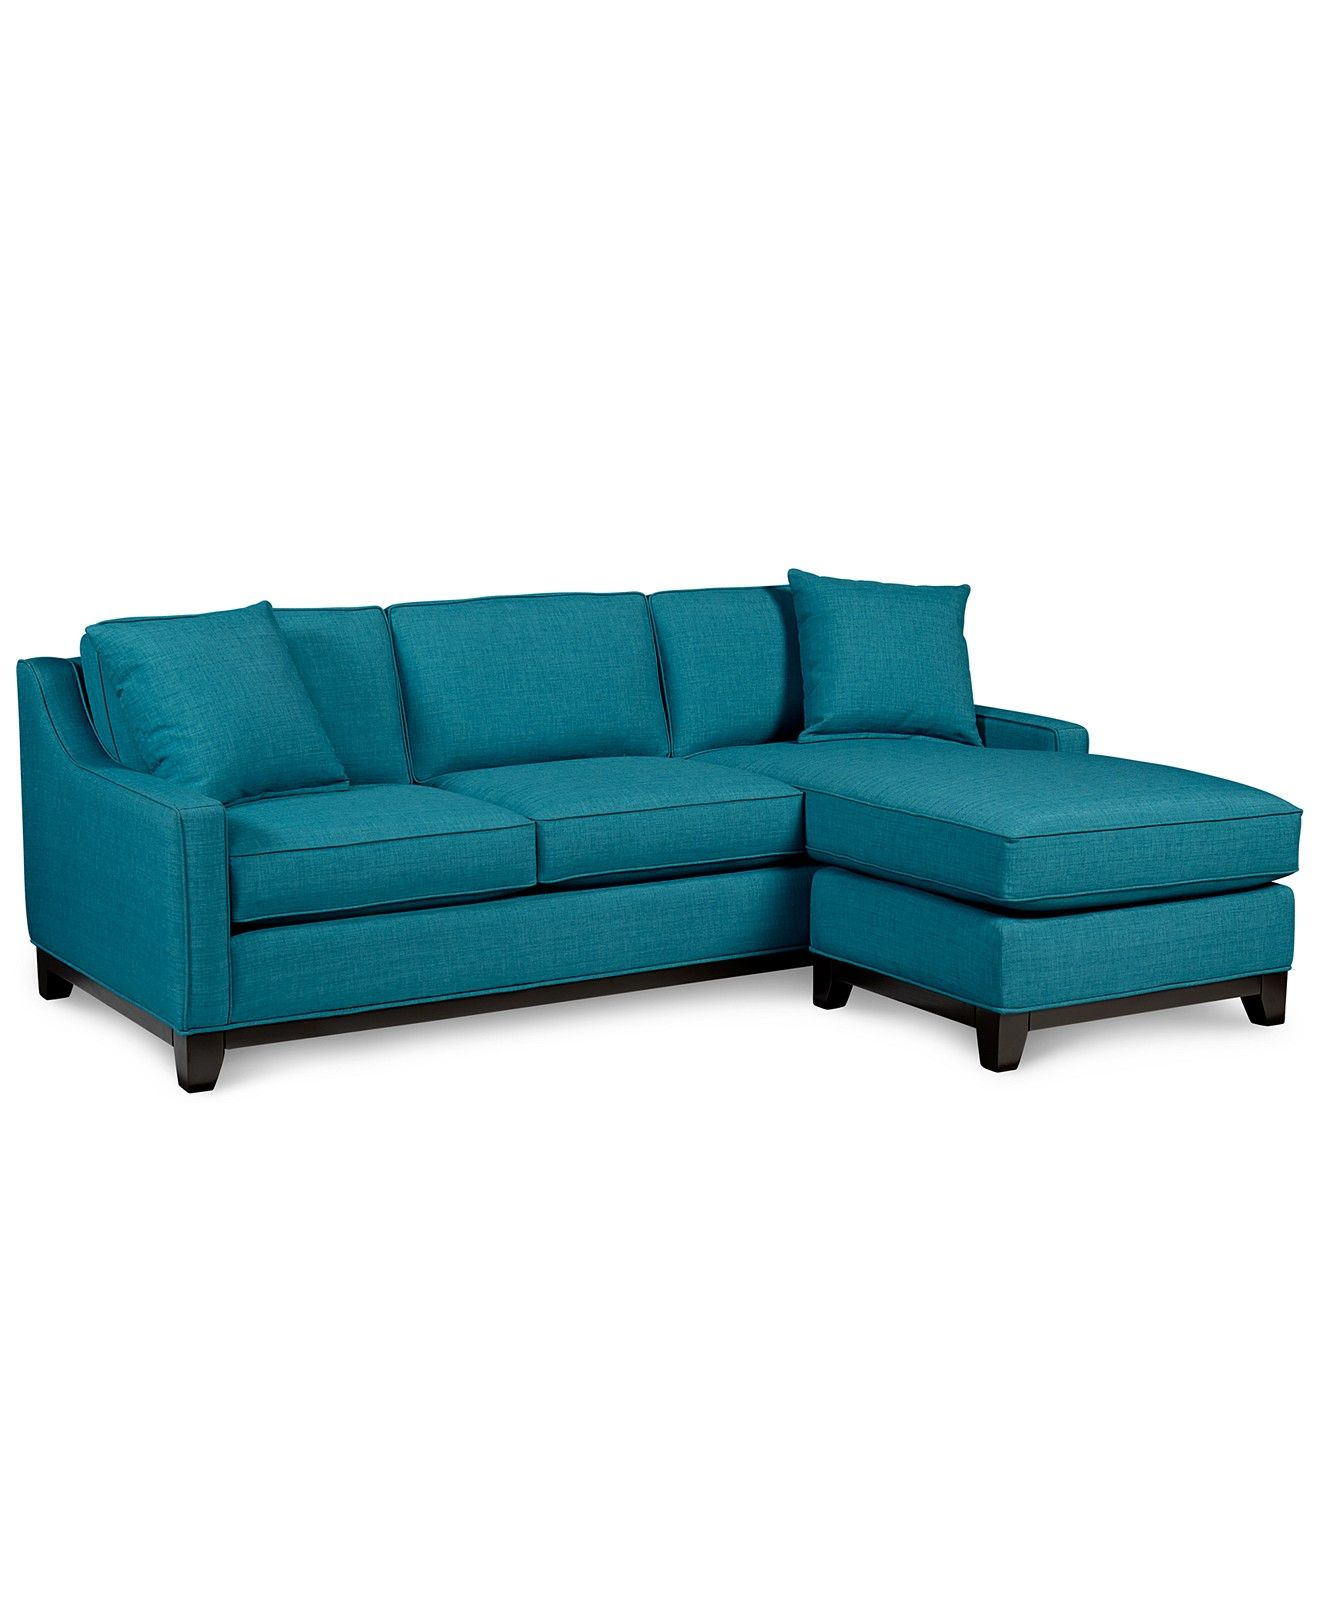 Best Keegan 90 2 Piece Fabric Reversible Chaise Sectional Sofa 640 x 480